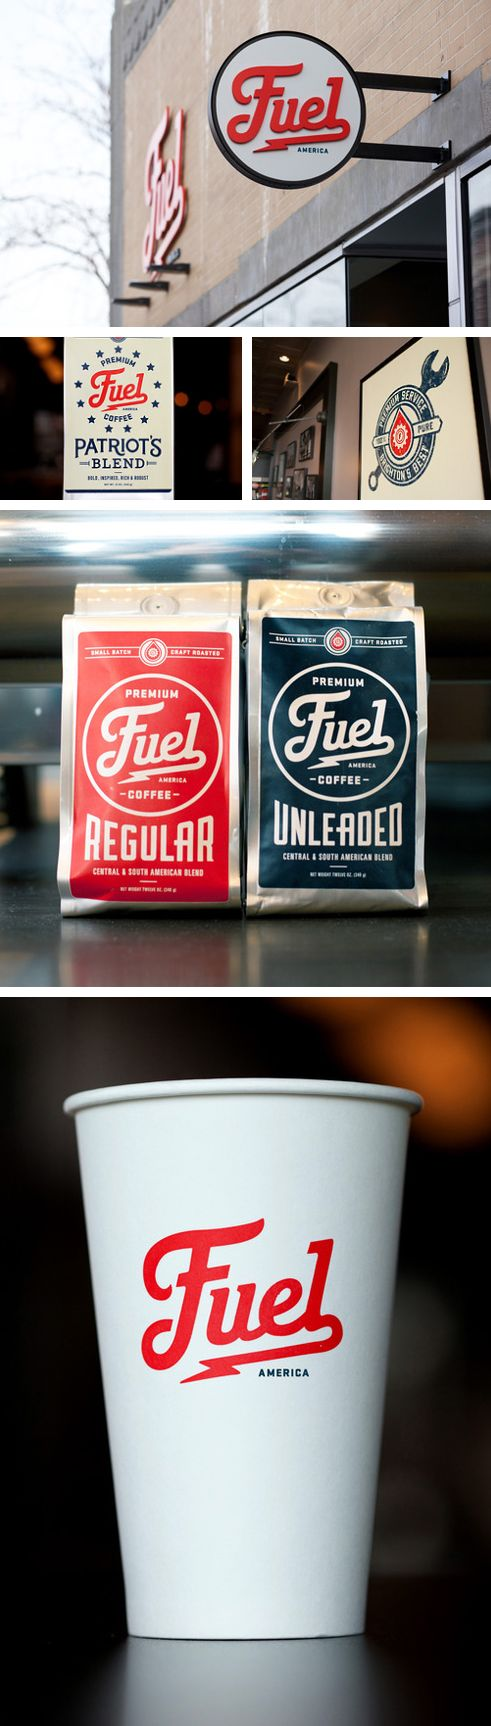 Fuel coffee branding